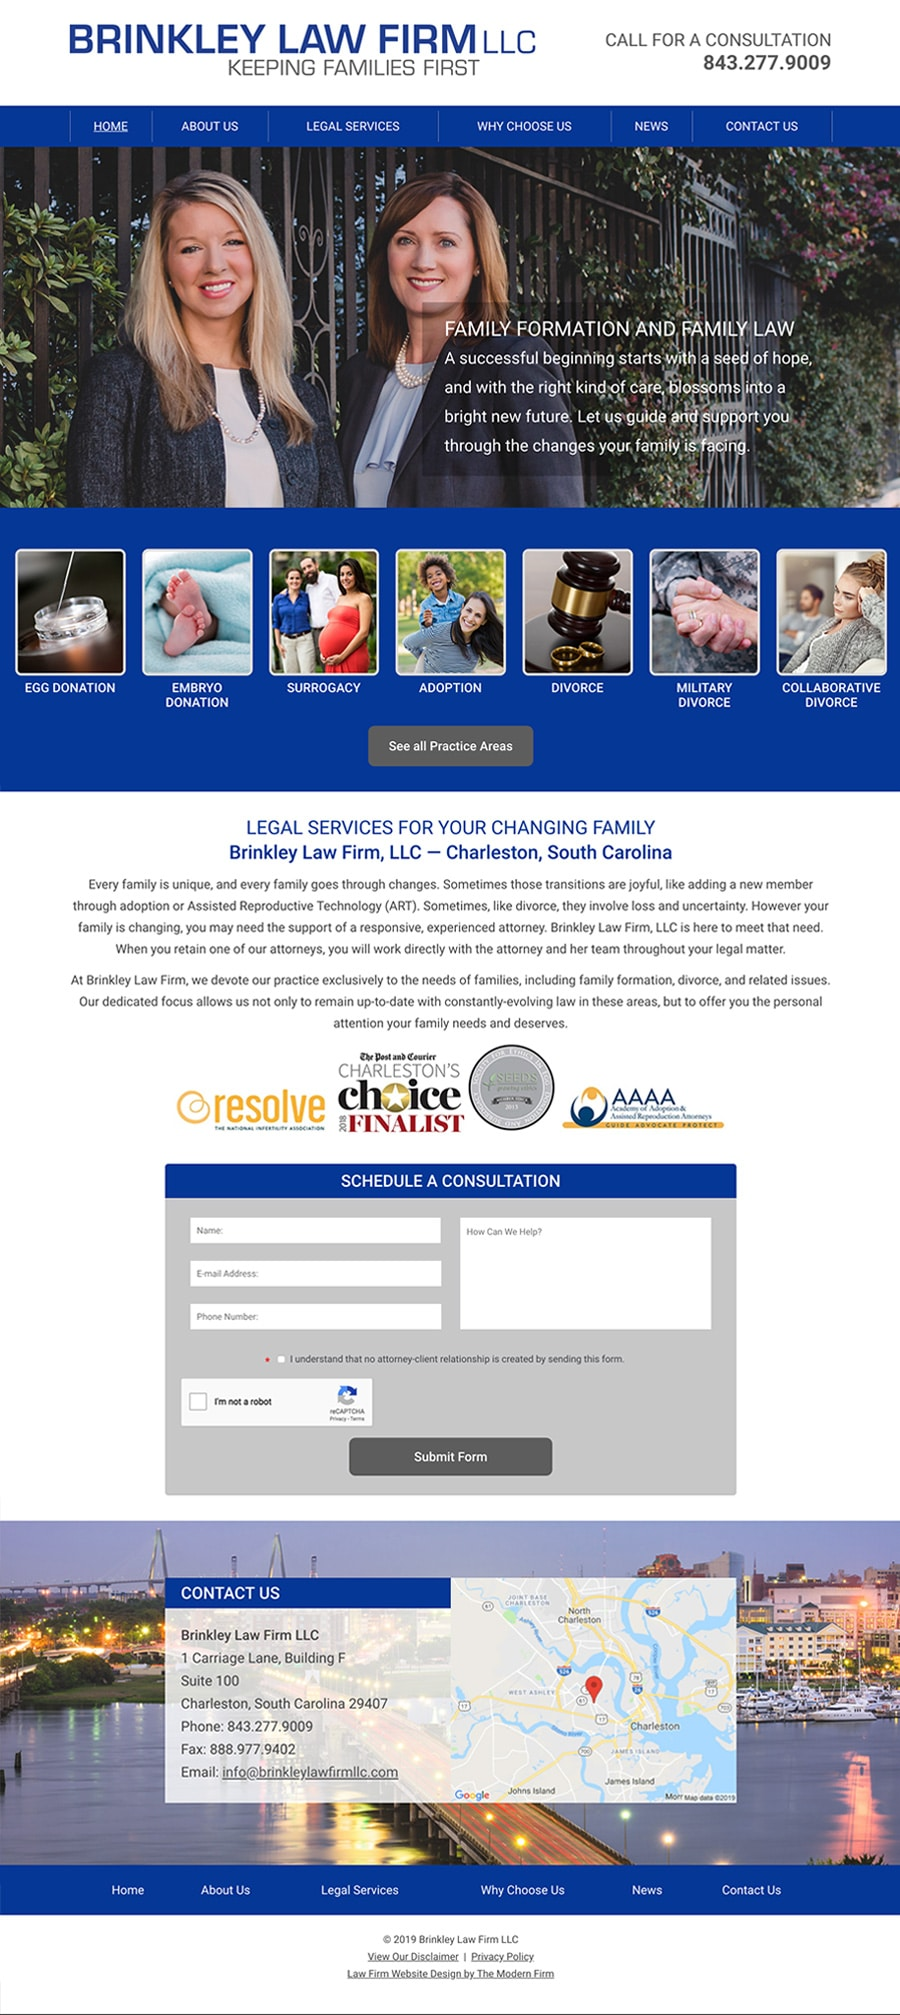 Law Firm Website Design for Brinkley Law Firm LLC